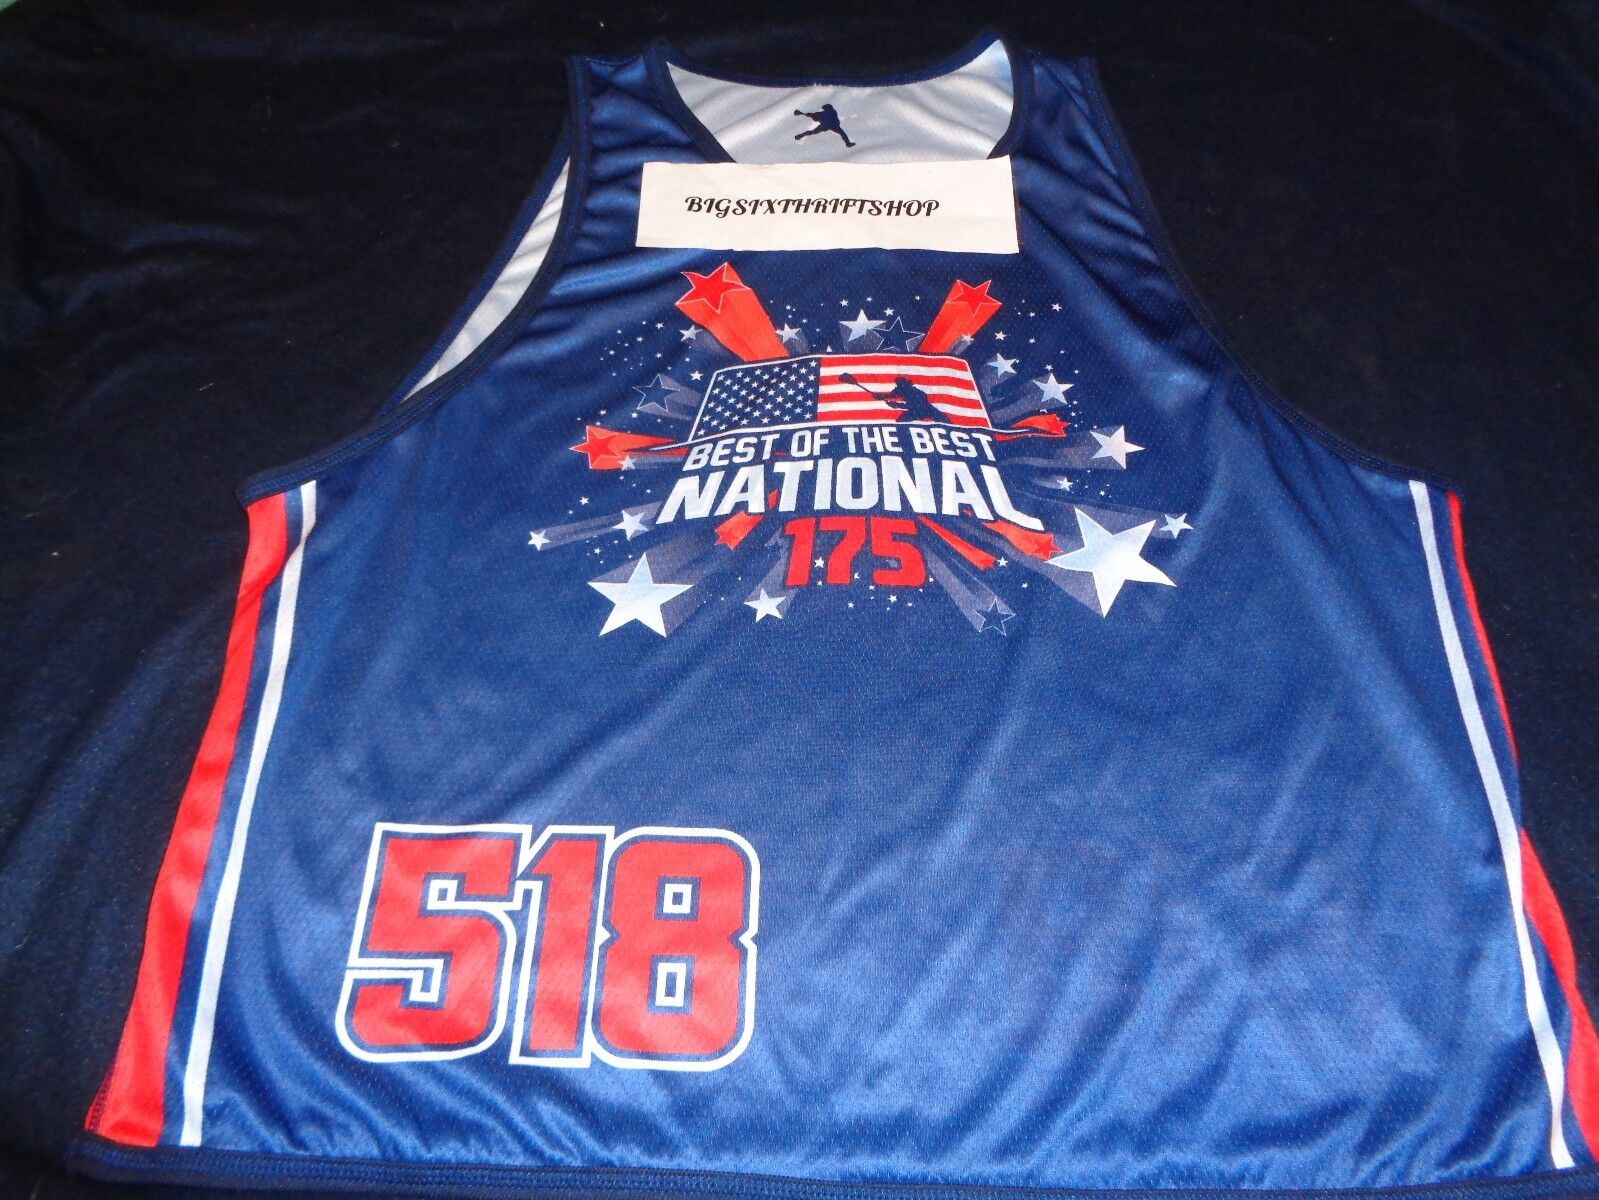 87e6db2a221 BEST OF THE NATIONAL REVERSIBLE LACROSSE JERSEY AUTHENTIC 175 BEST ...